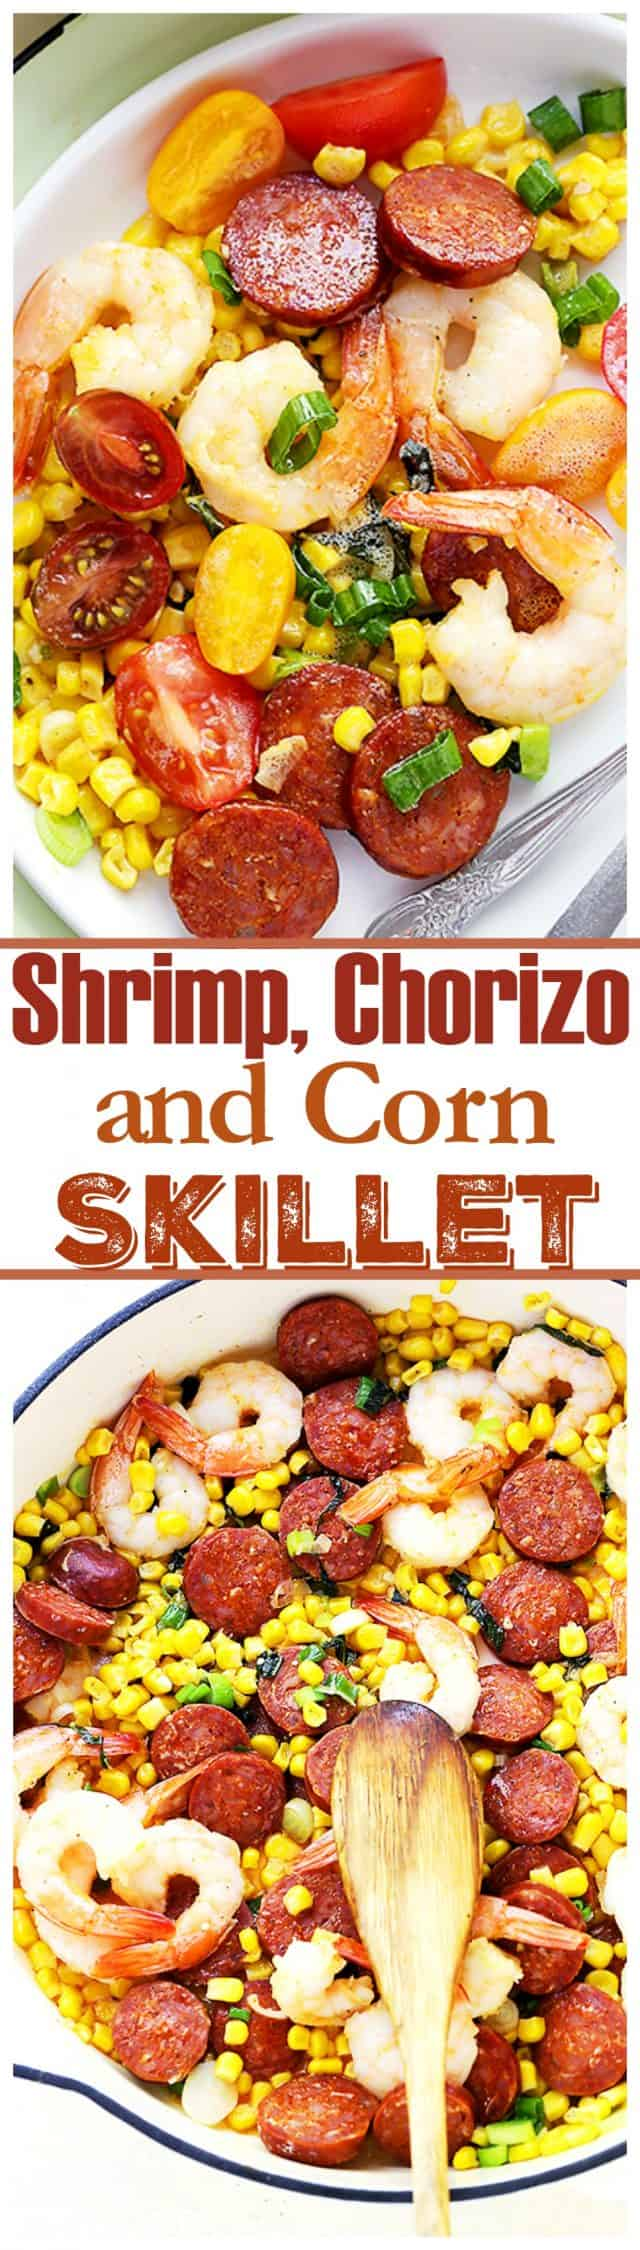 Shrimp, Chorizo and Corn Skillet - Easy one skillet meal packed with shrimp, tomatoes, corn and chorizo sausage.